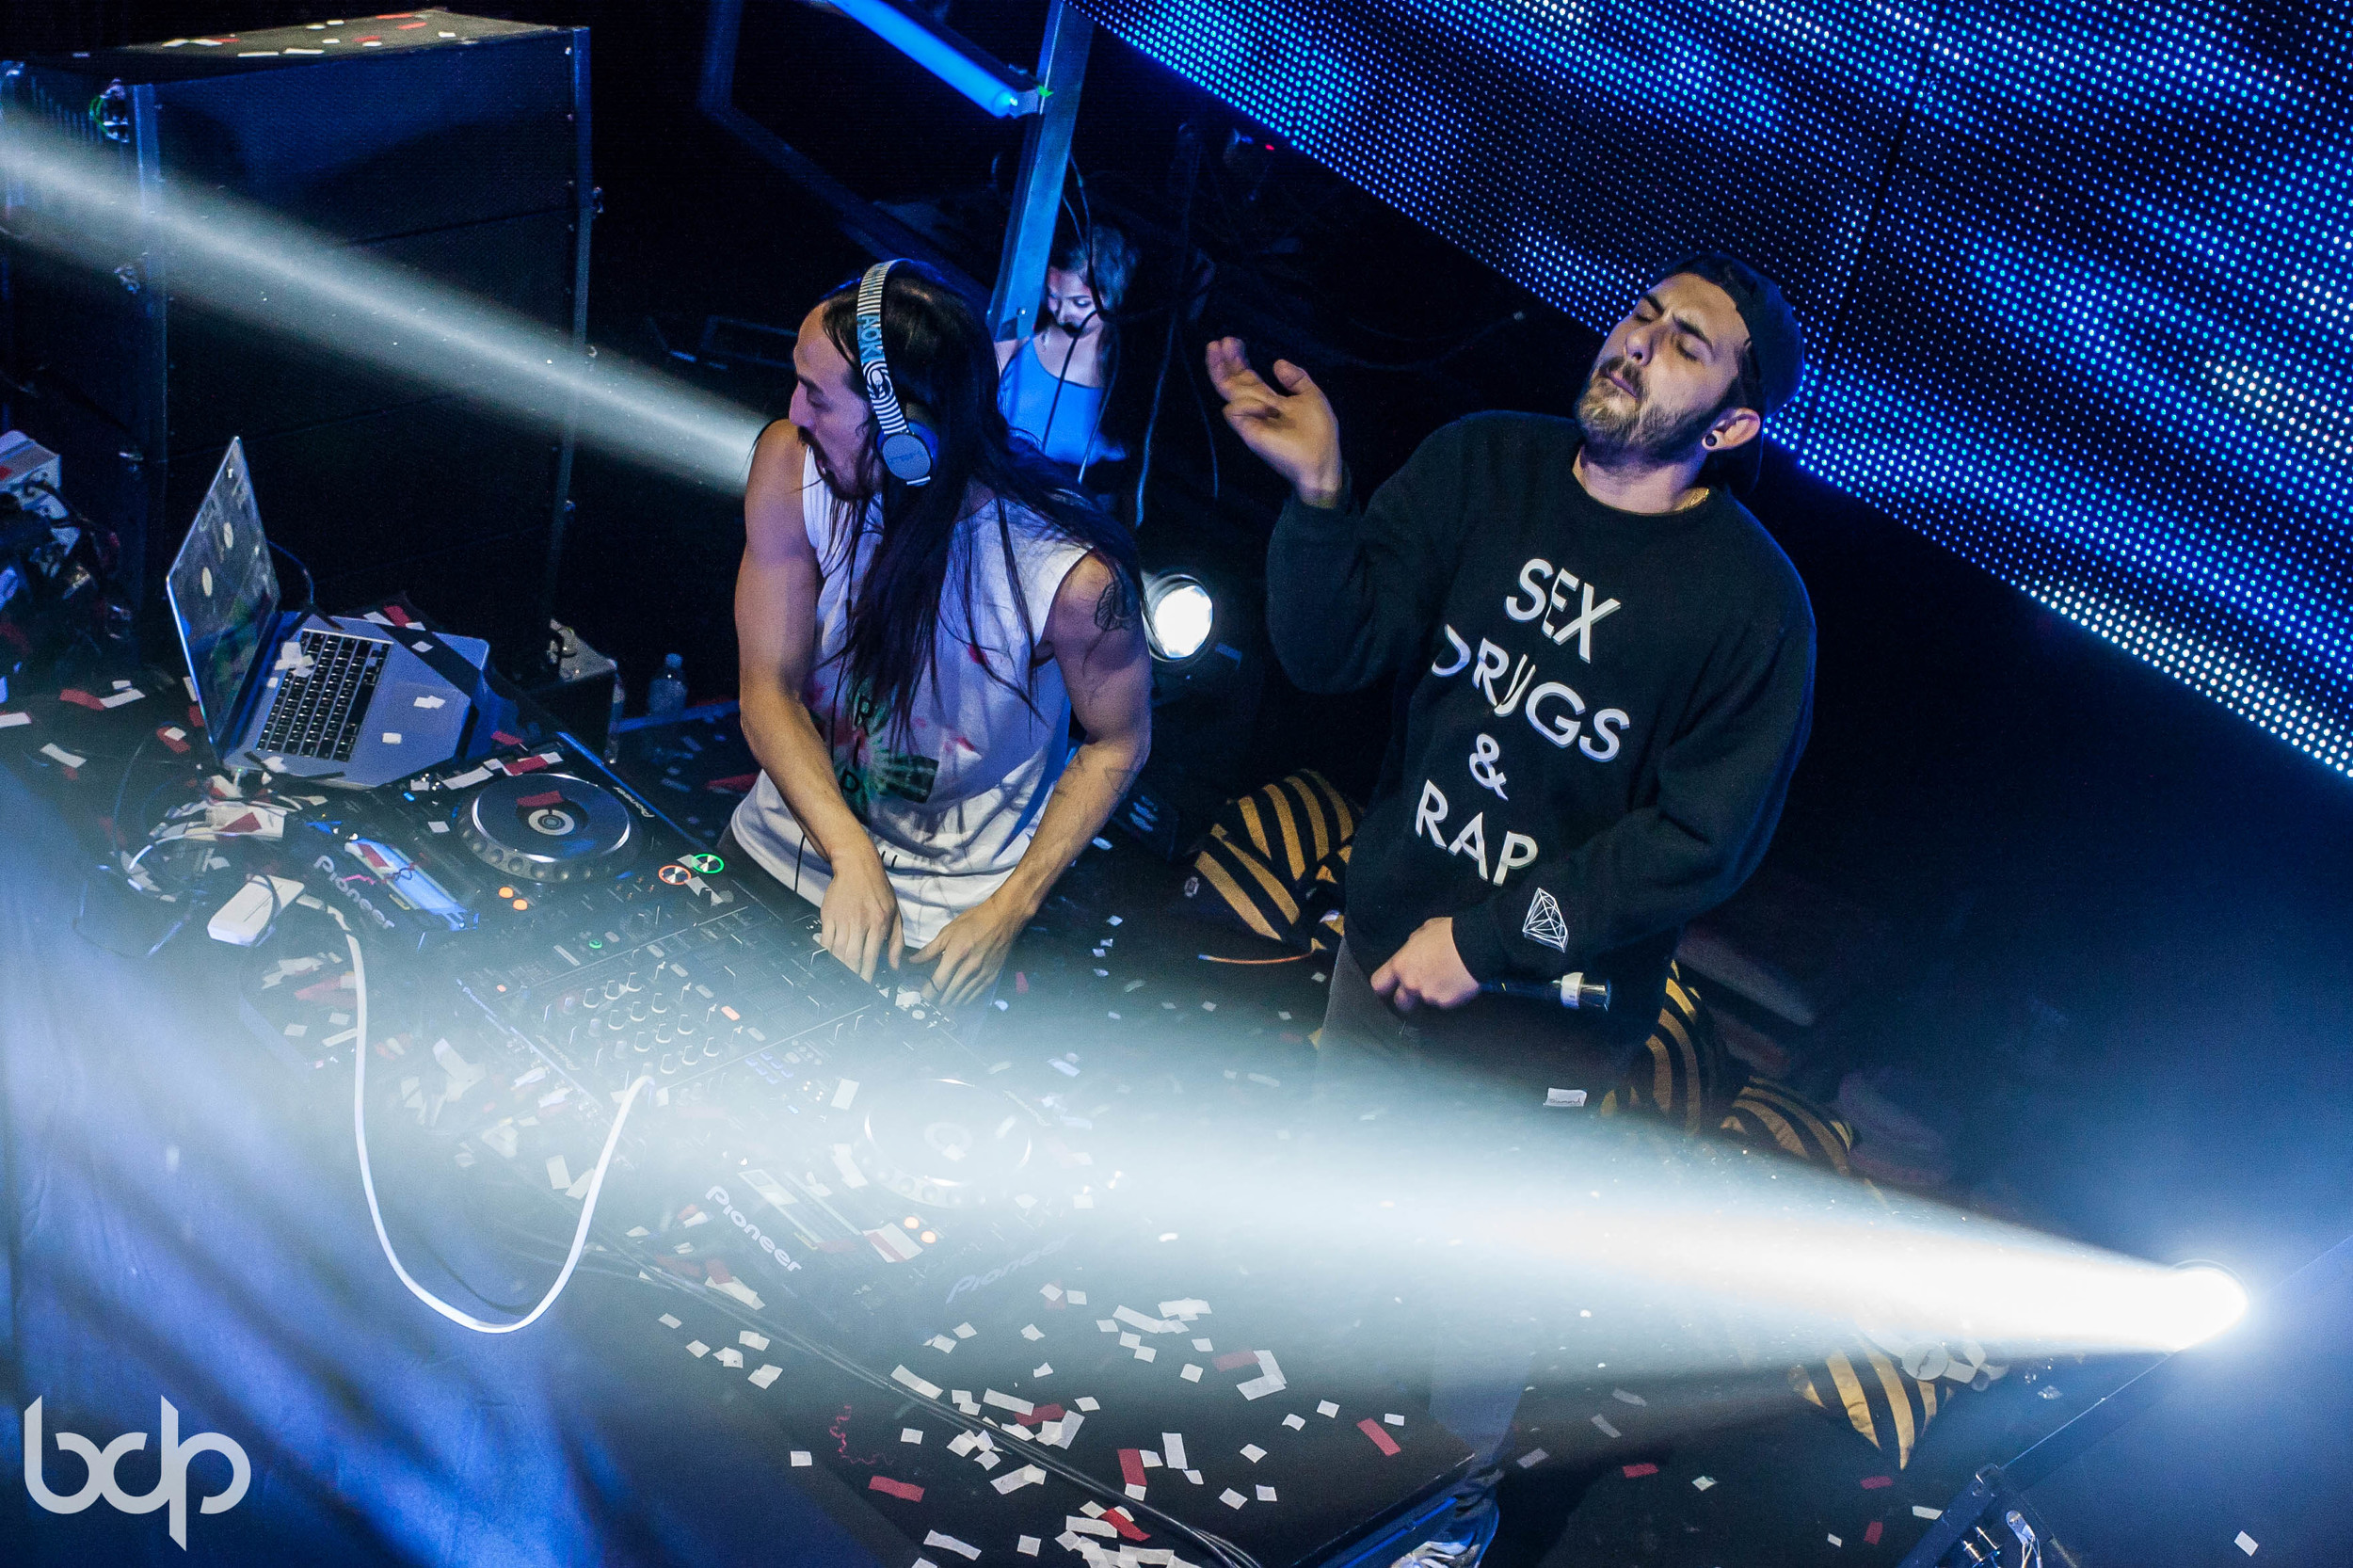 Aokify America Tour at Epic at Epic 110913 BDP-54.jpg